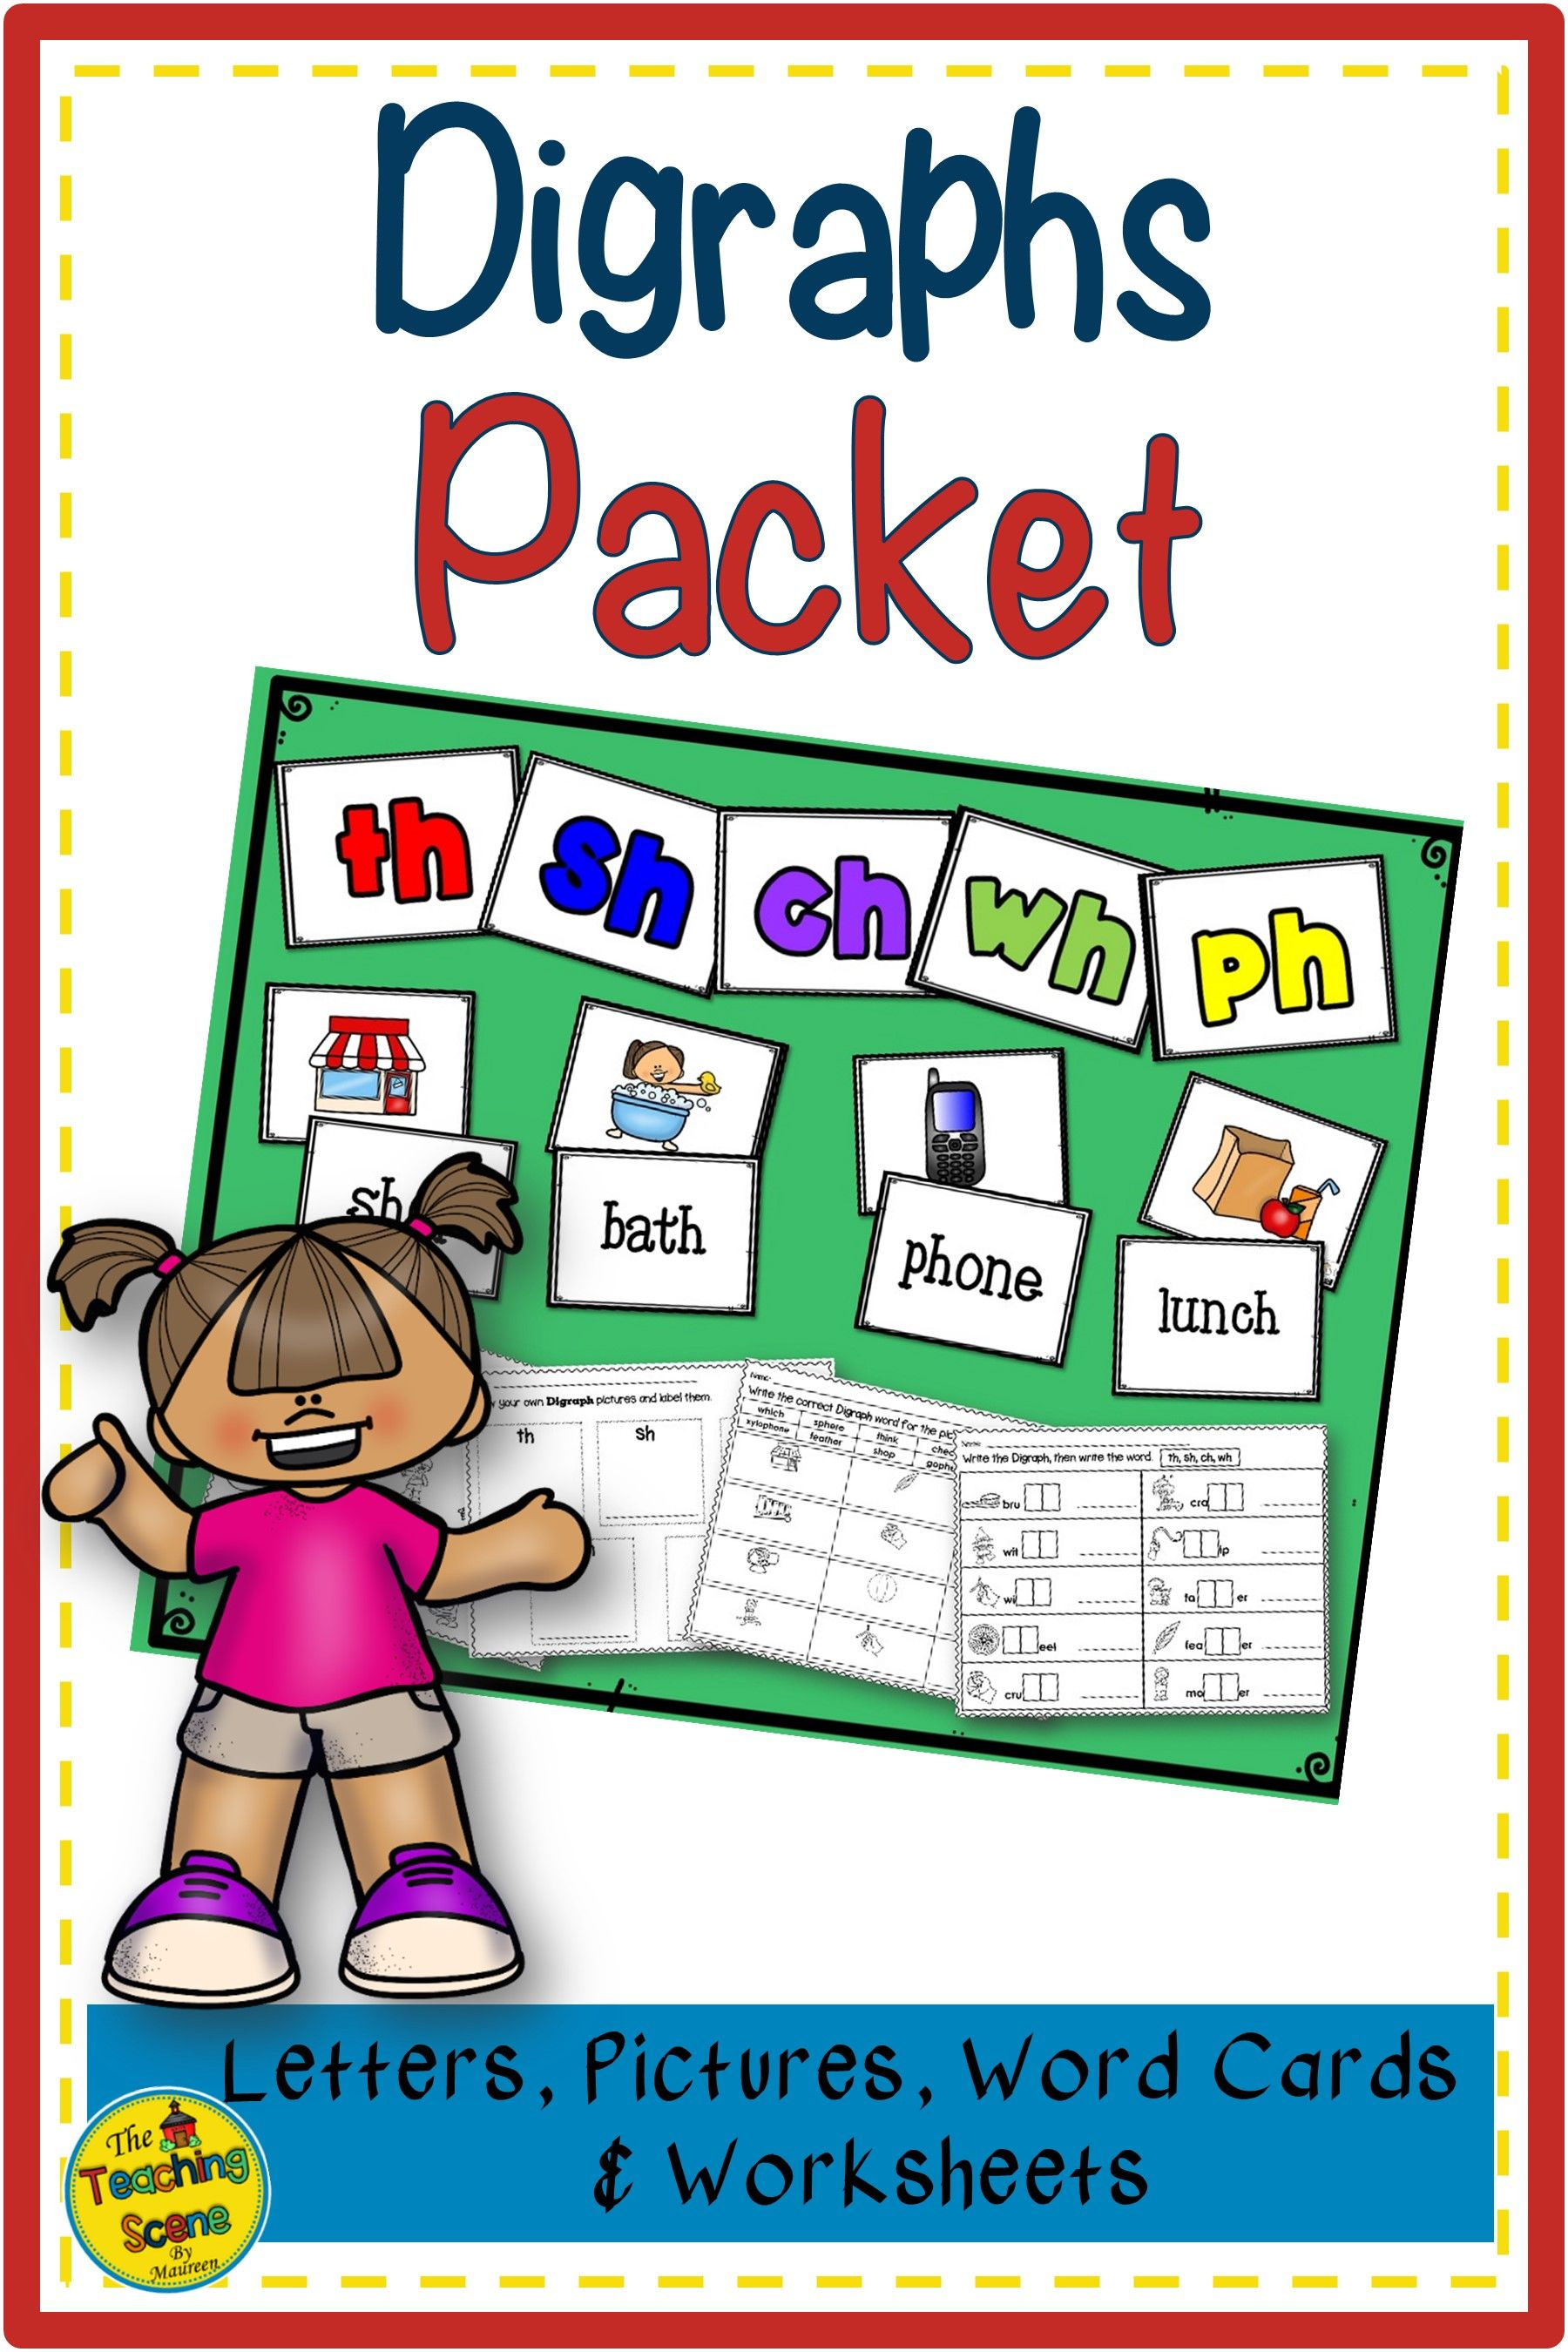 Digraph Packet Th Sh Ch Wh Ph Letters Pictures